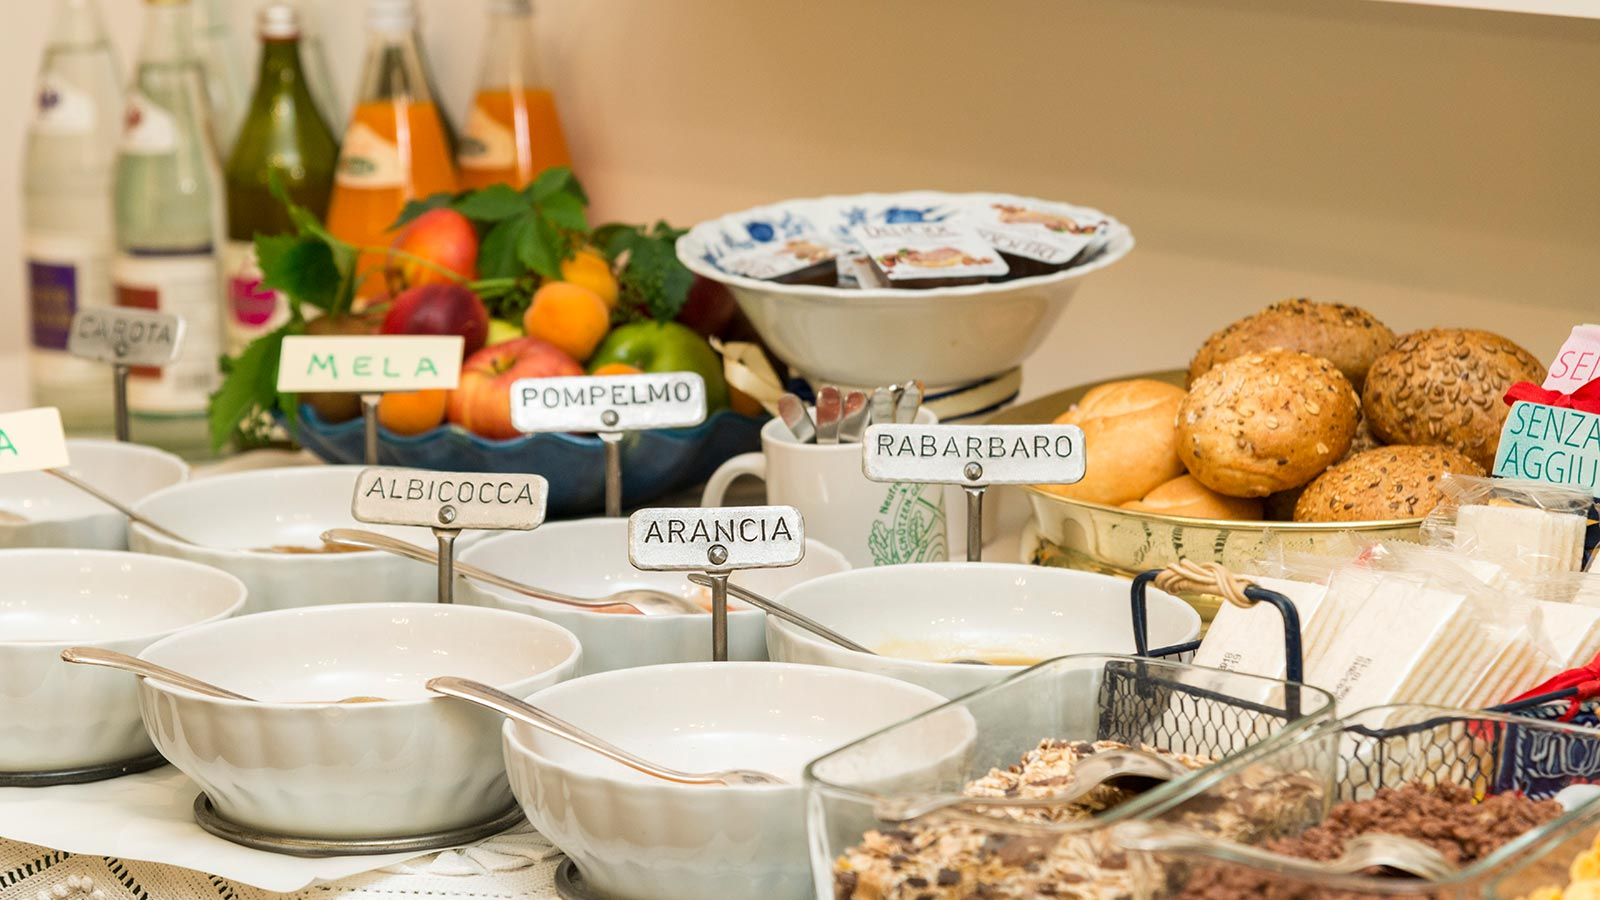 Breakfast buffet with a wide range of local products